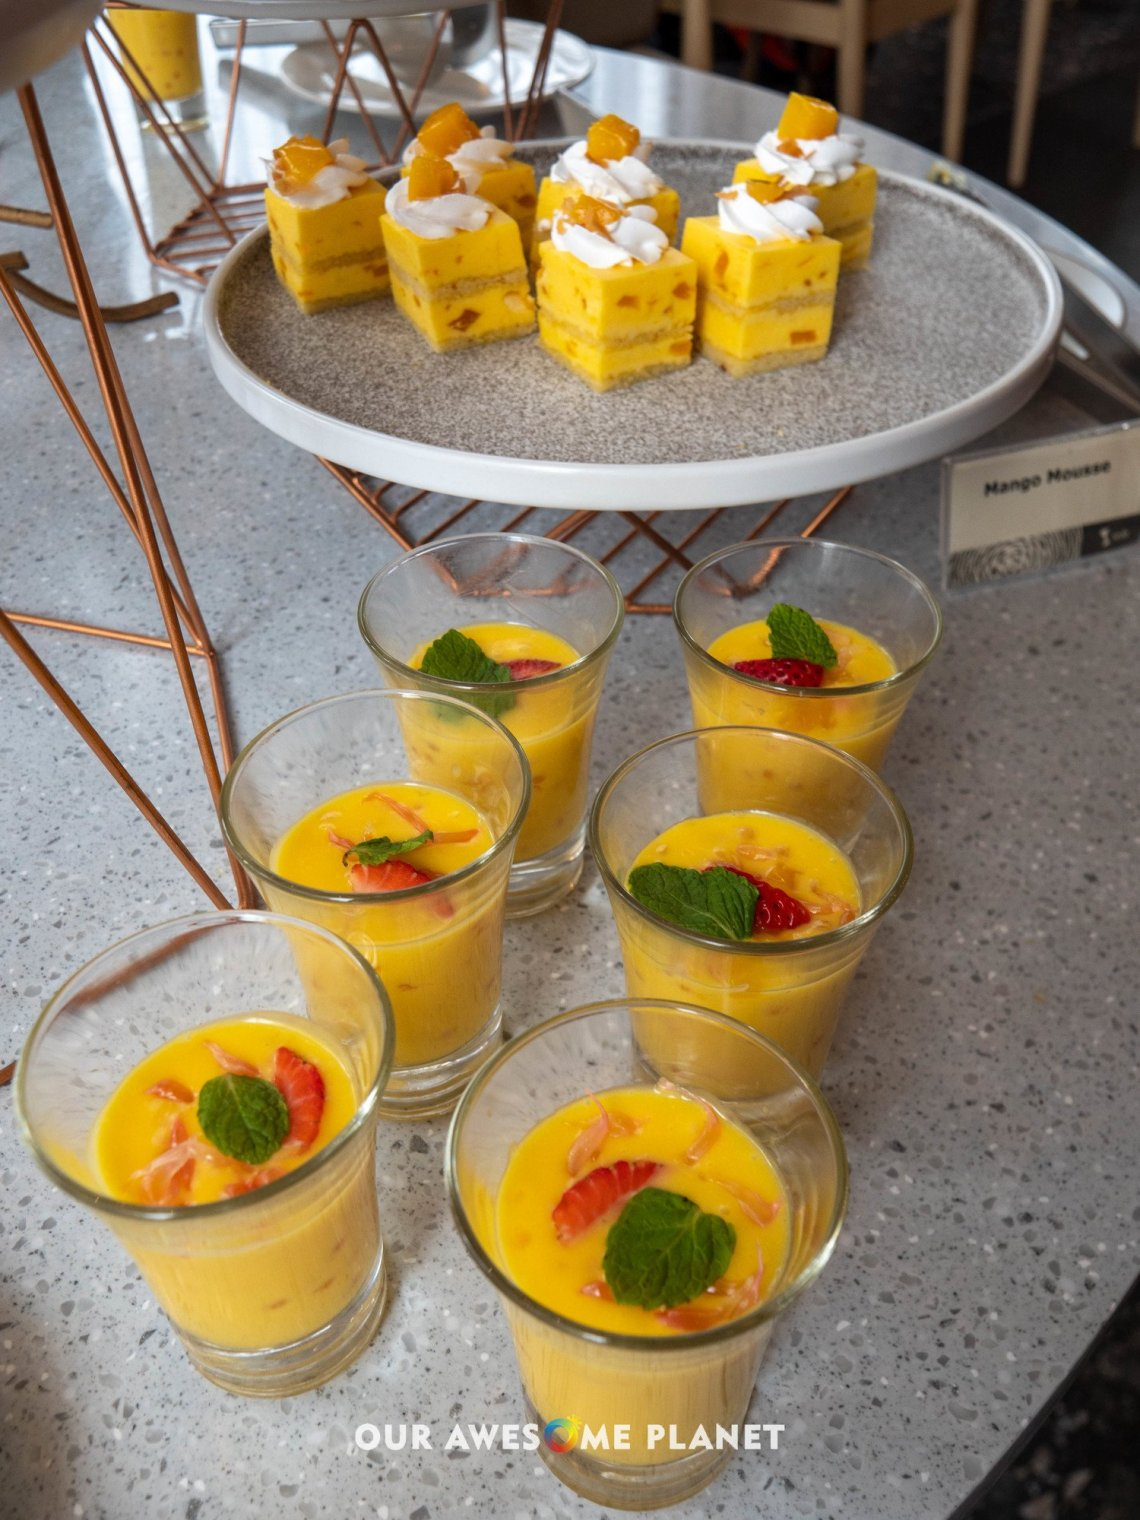 Refreshing Sweetened Mango Puree and Sago Creamed with Pomelo